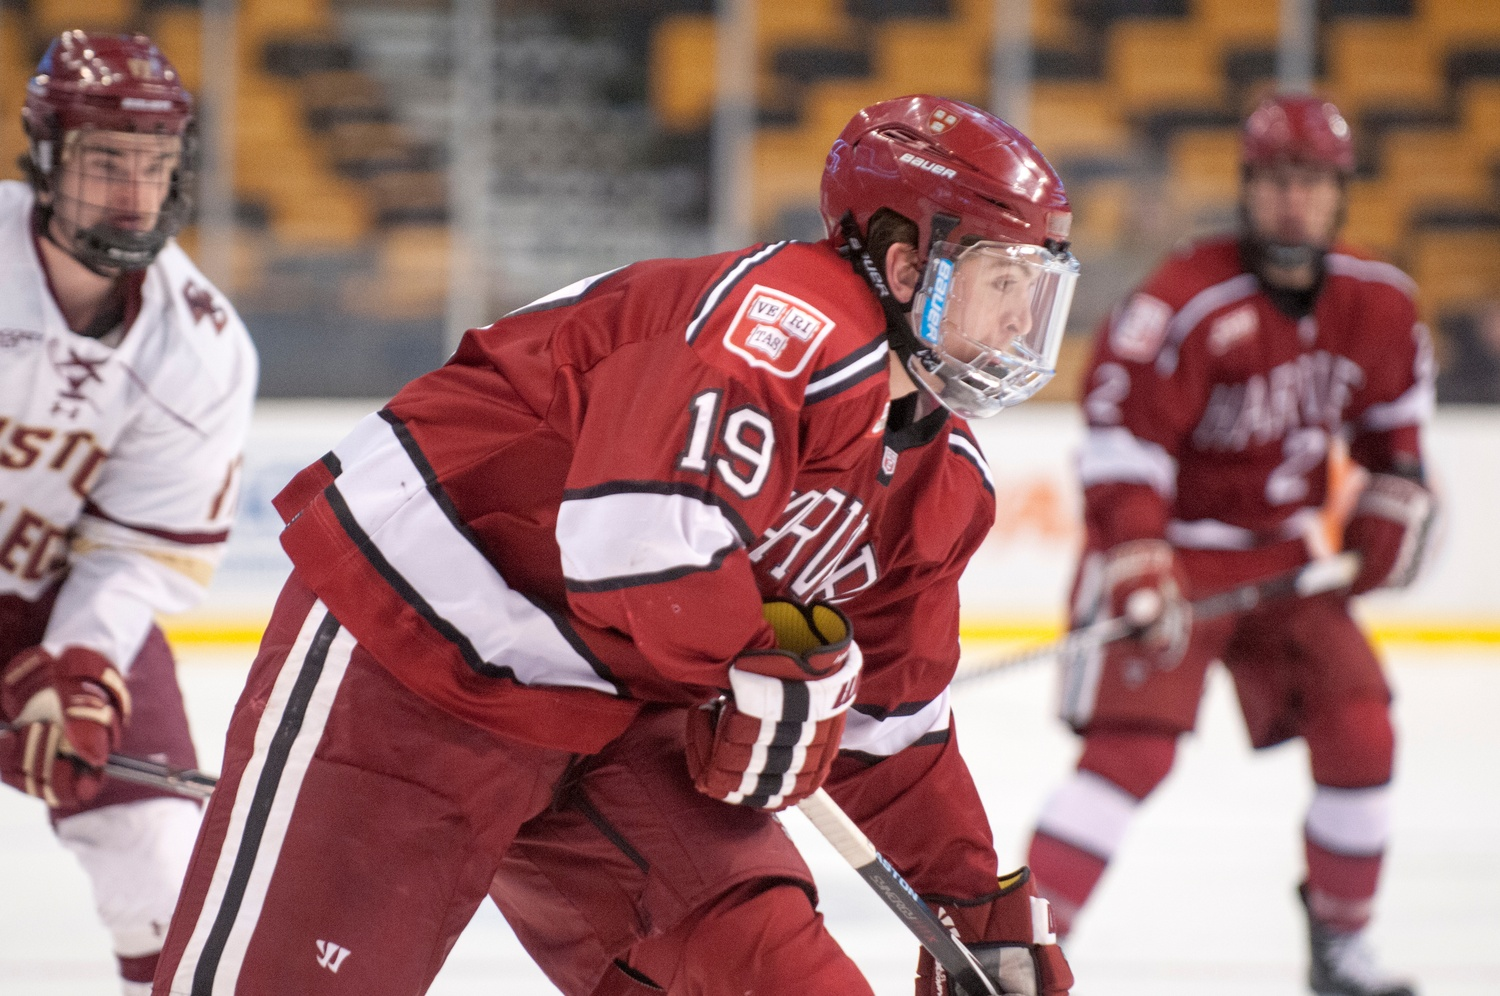 Junior forward Jimmy Vesey led the Crimson throughout the year, helping Harvard take home the ECAC tournament title while racking up a variety of individual honors.